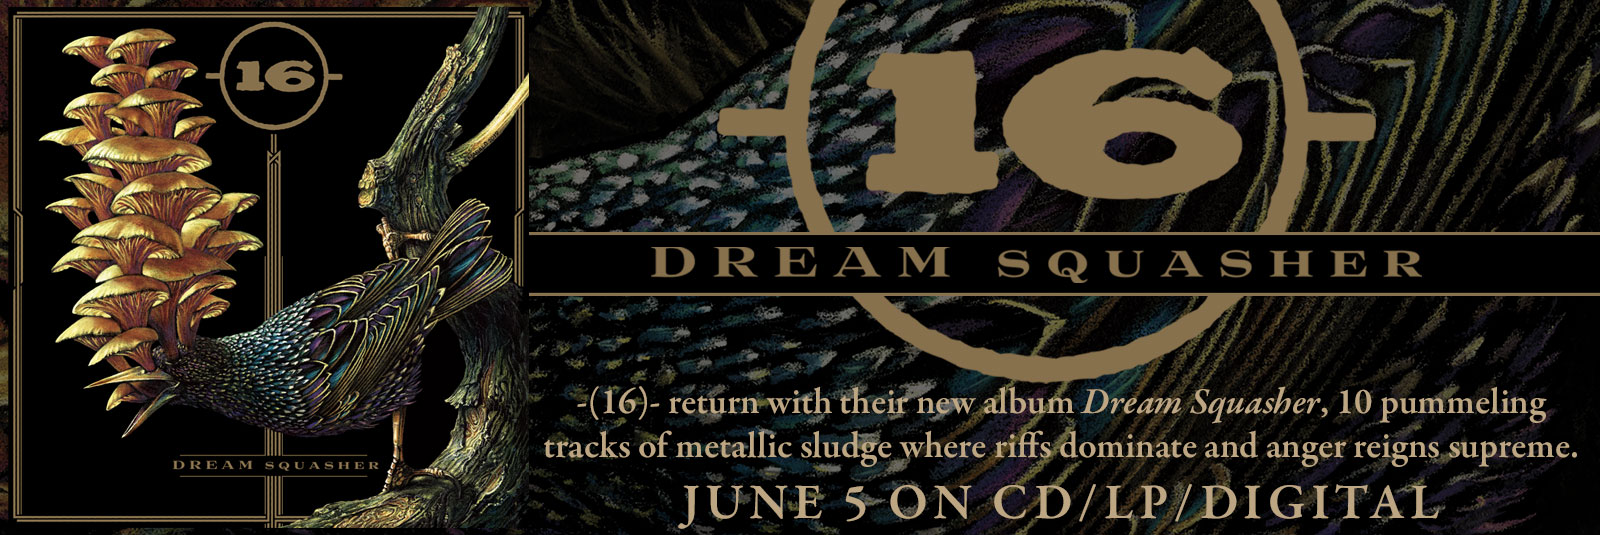 16-dream-squasher-sludge-metal-relapse